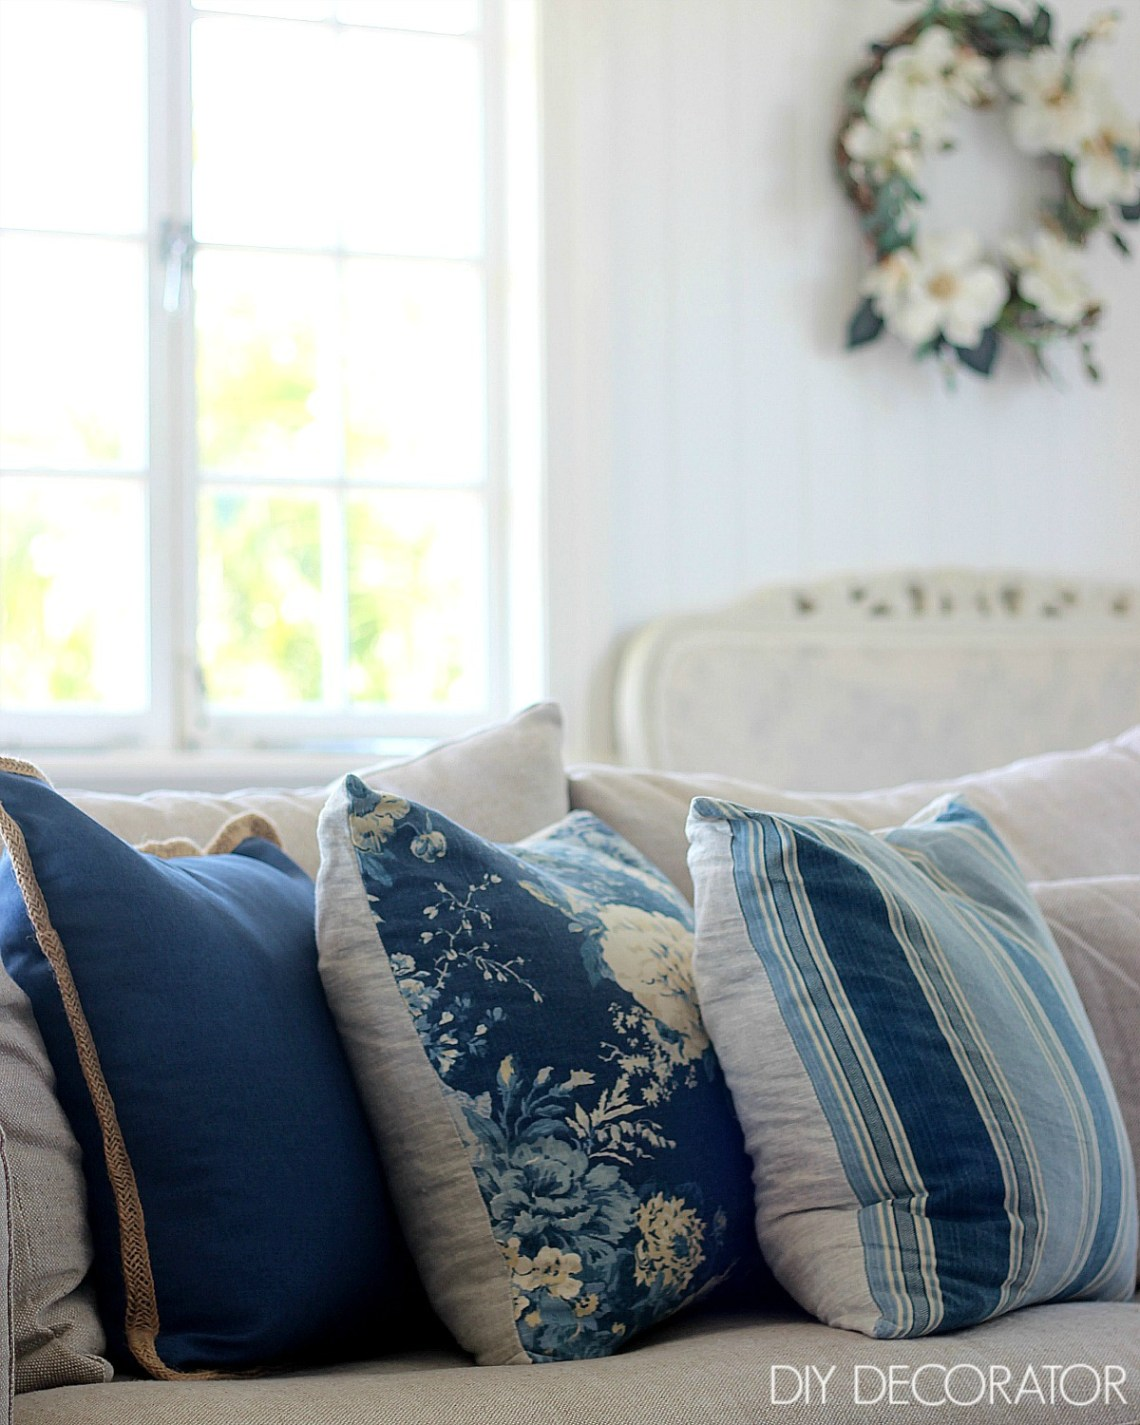 Do you have a love hate relationship with cushions? They say you can never have too many cushions, but can you?